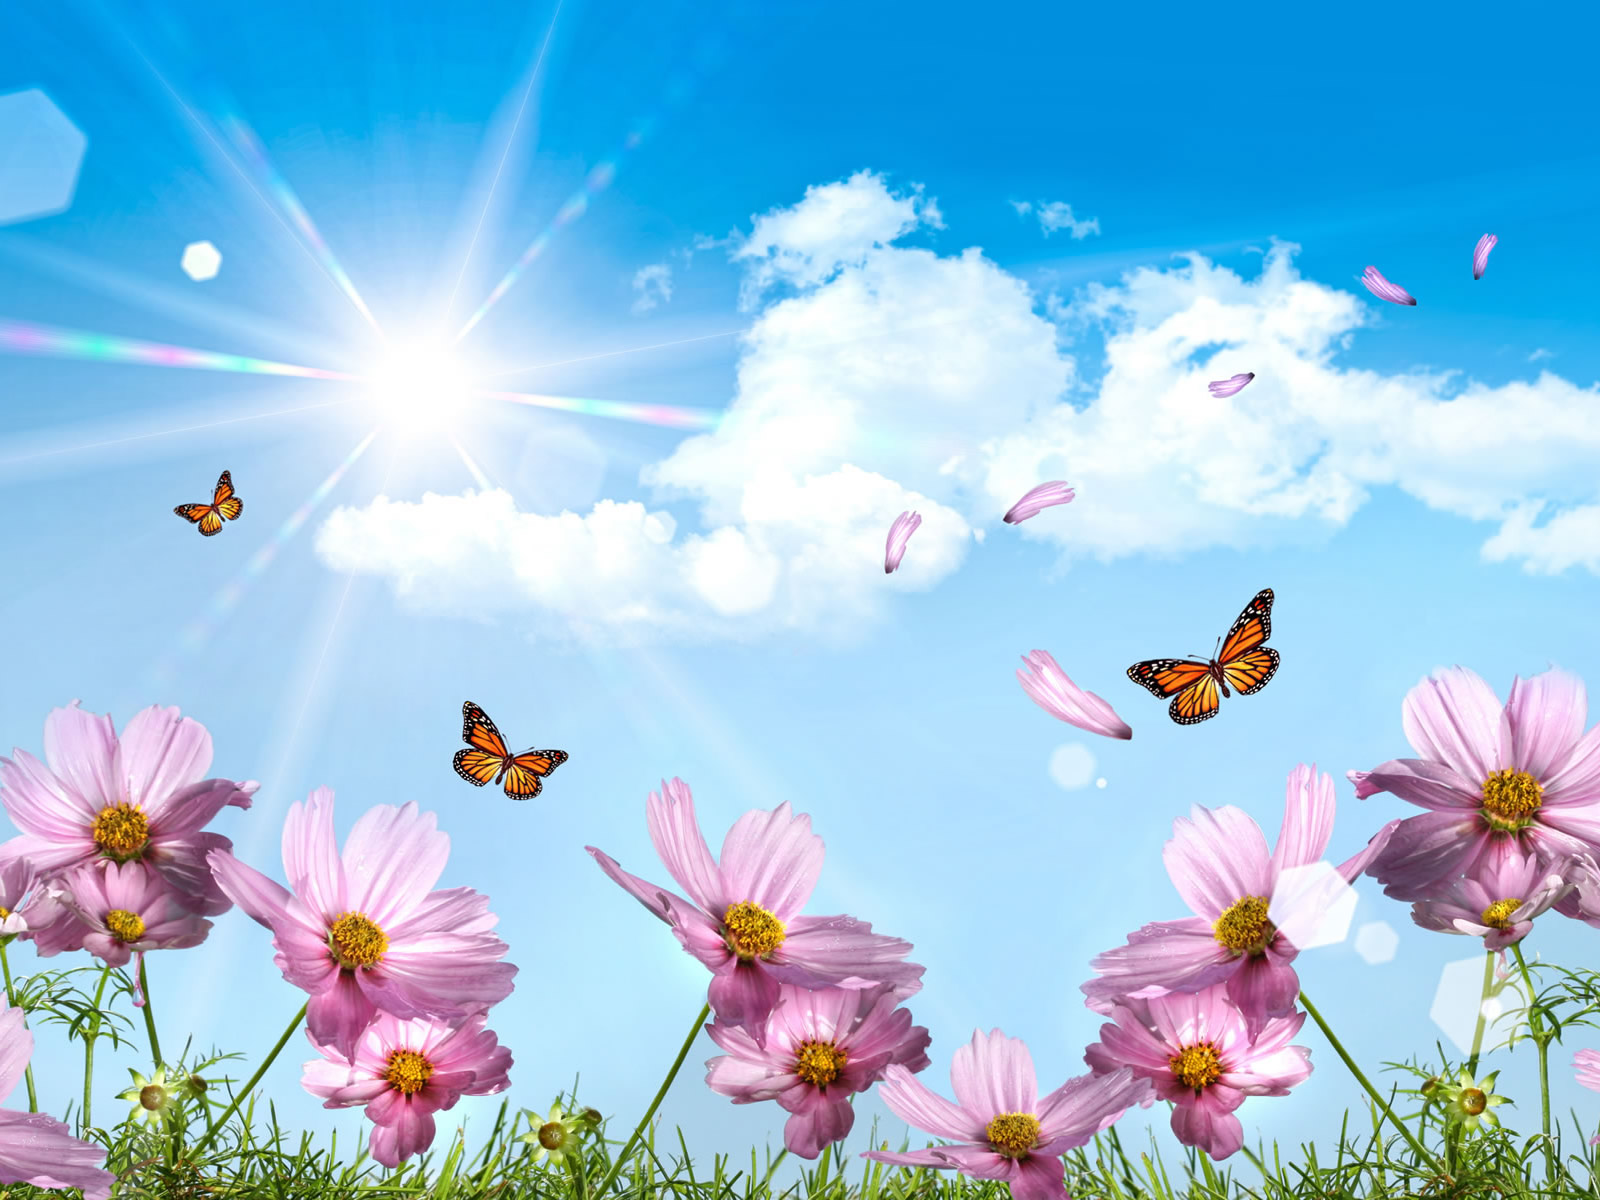 Blue sky desktop wallpaper and summer flowers that attract butterflies